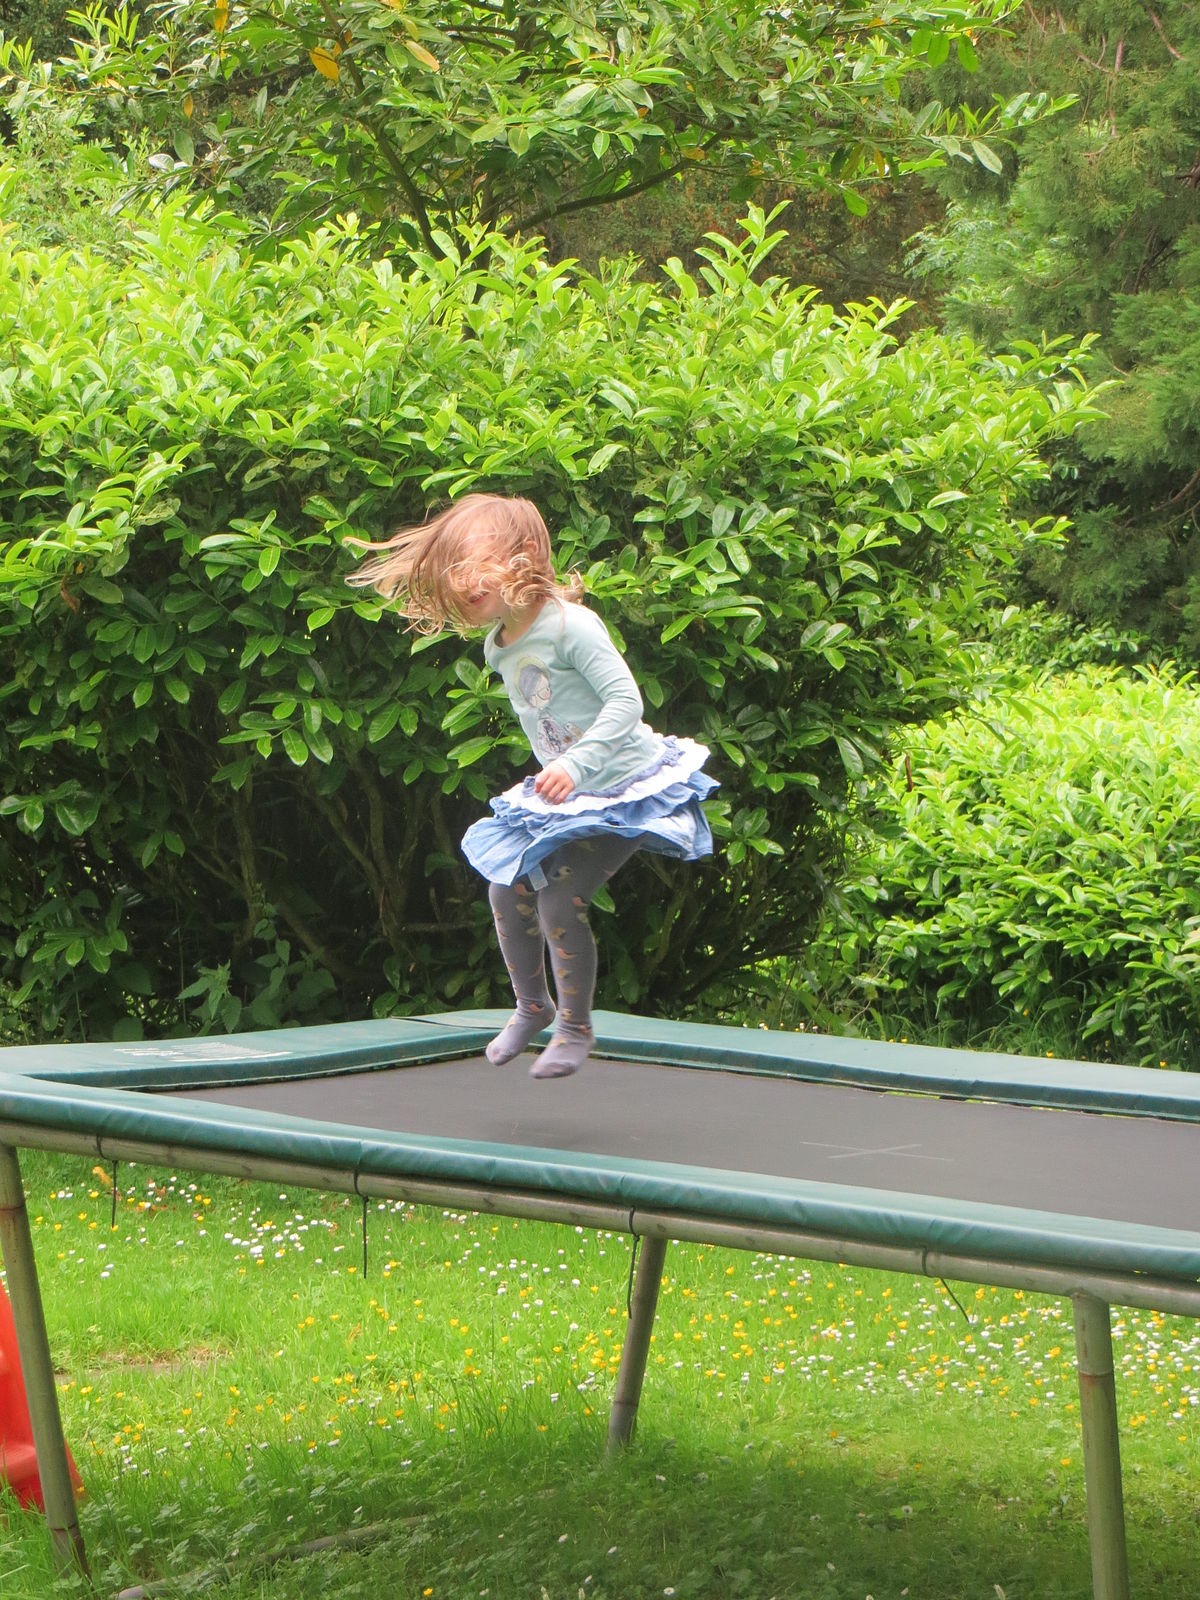 Girl on Trampoline.JPG